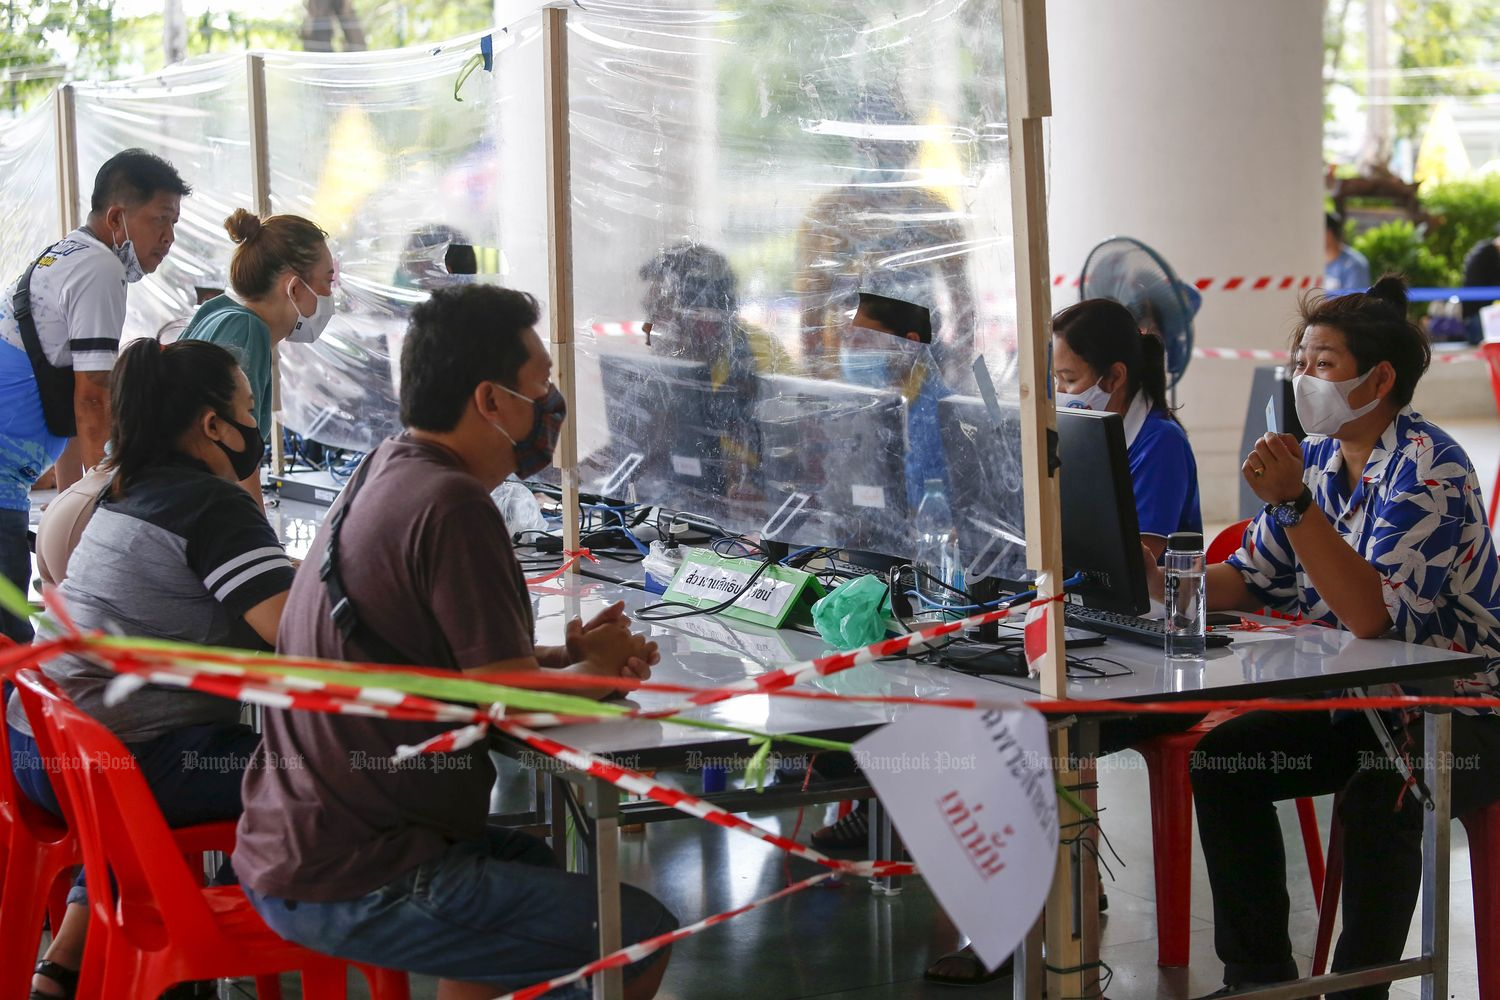 Laid-off employees apply for benefits at the Social Security Office's headquarters in Nonthaburi province in May last year. (Photo by Pattarapong Chatpattarasill)